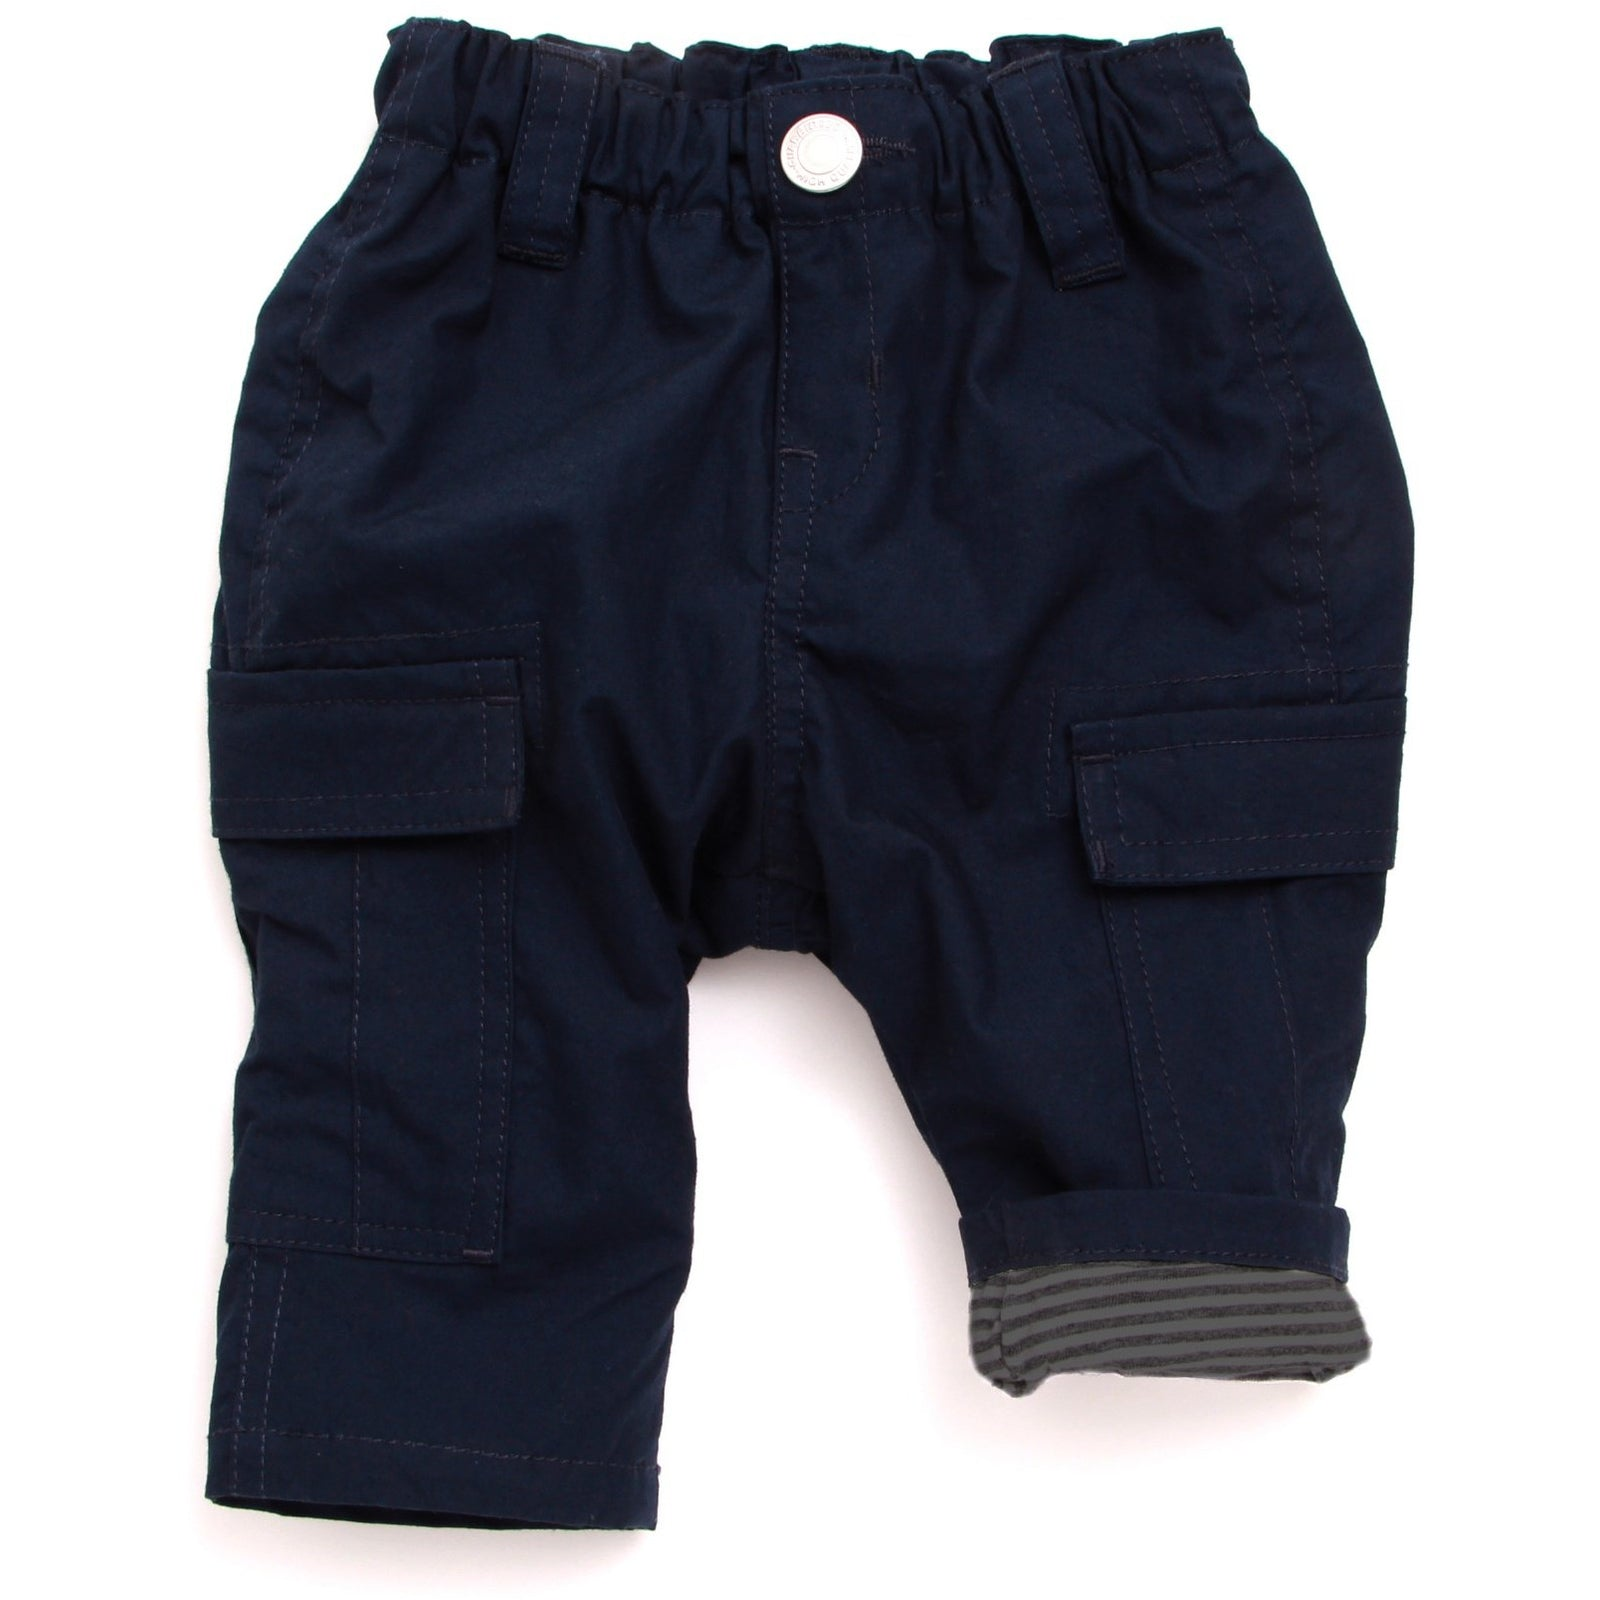 Stripe Lined Cargo Pants - Navy